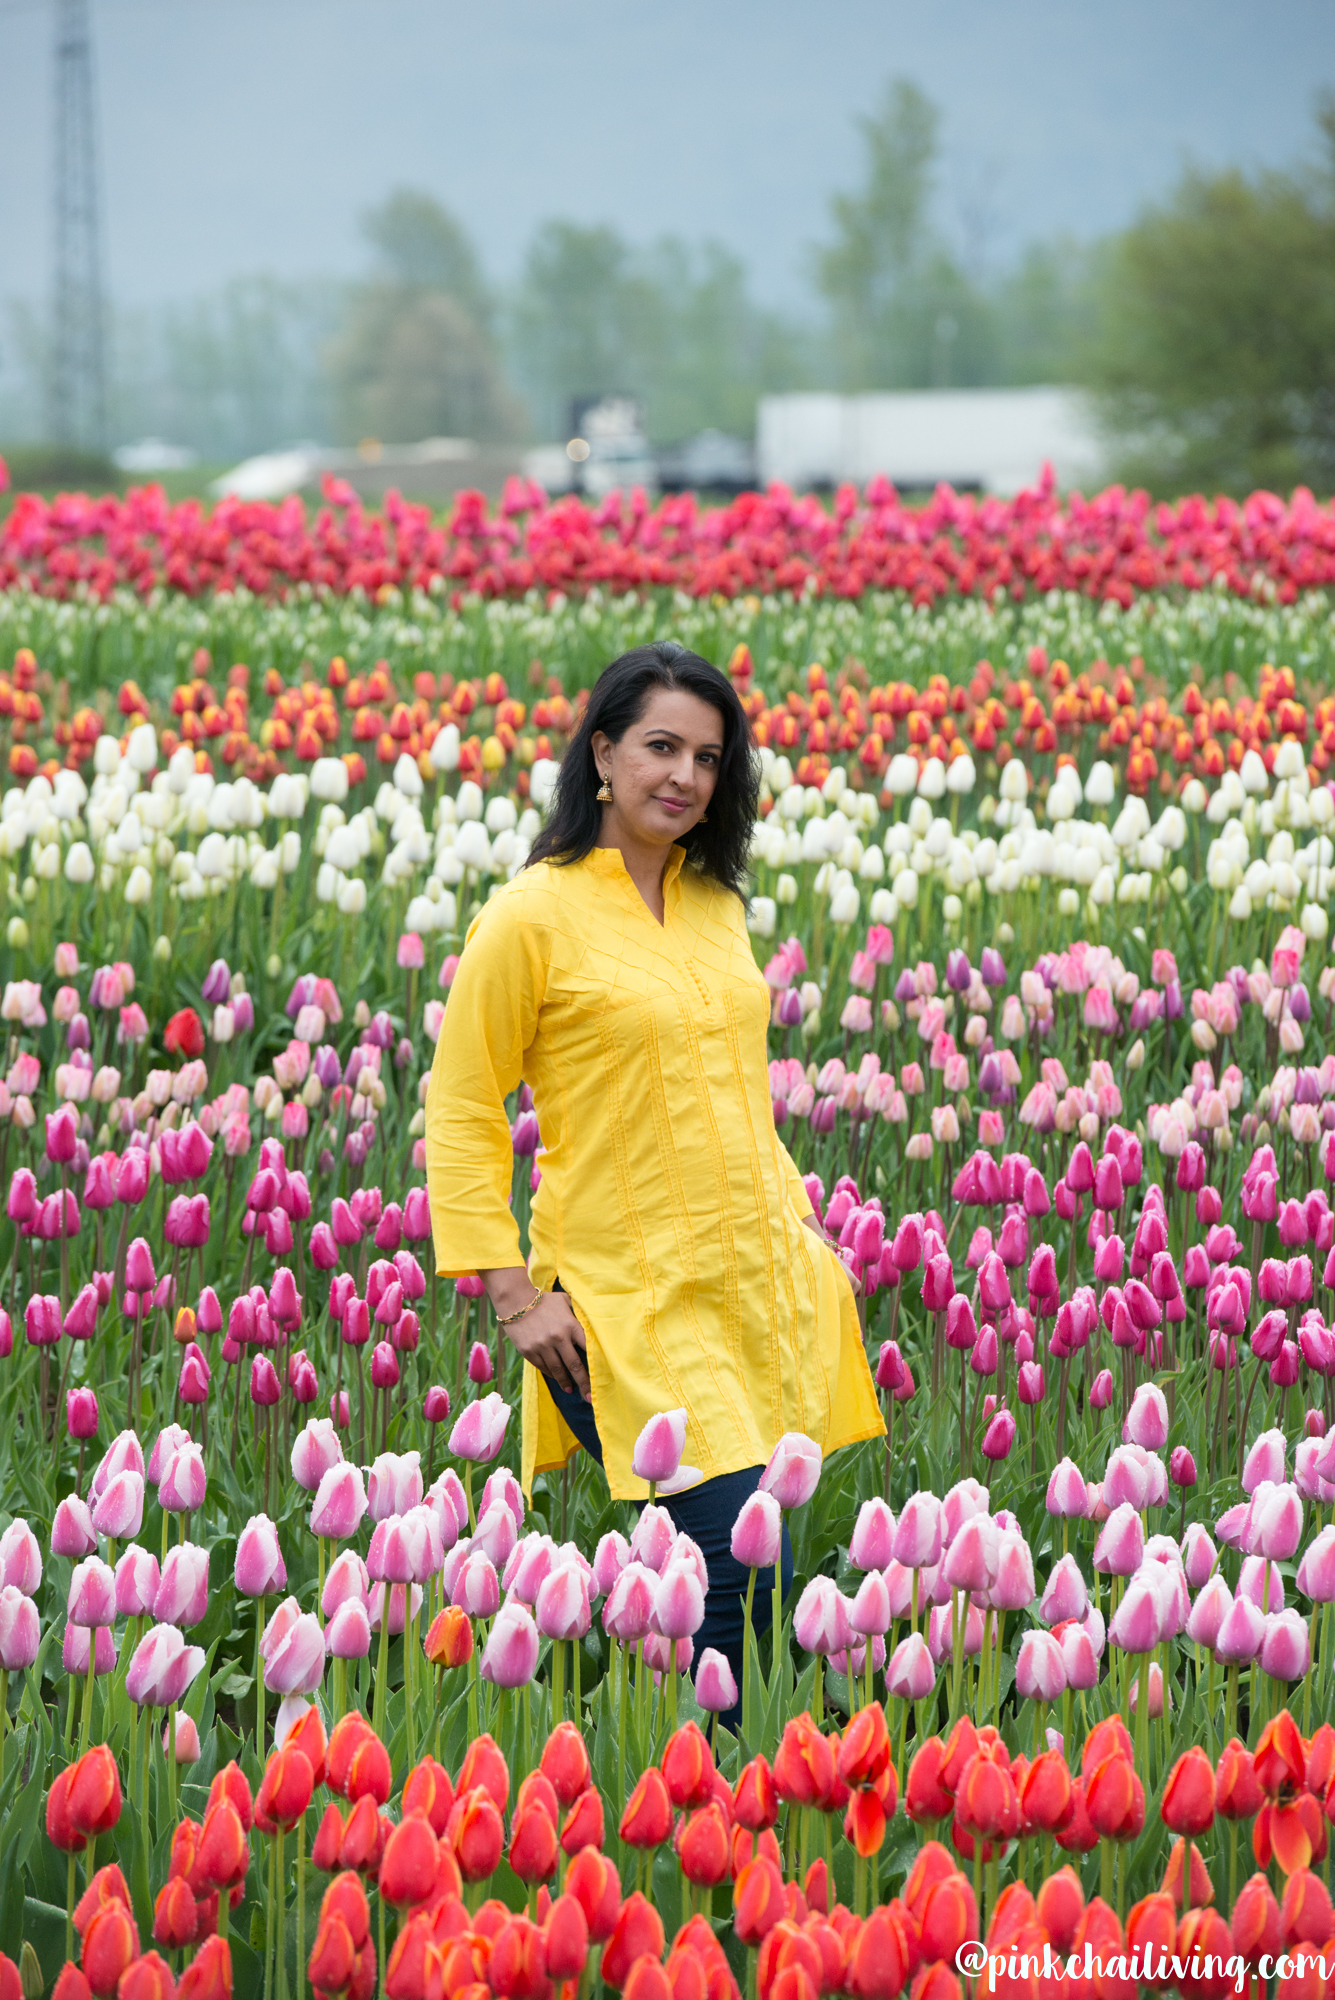 Bloom Tulip Festival Abbotsford: In Pictures